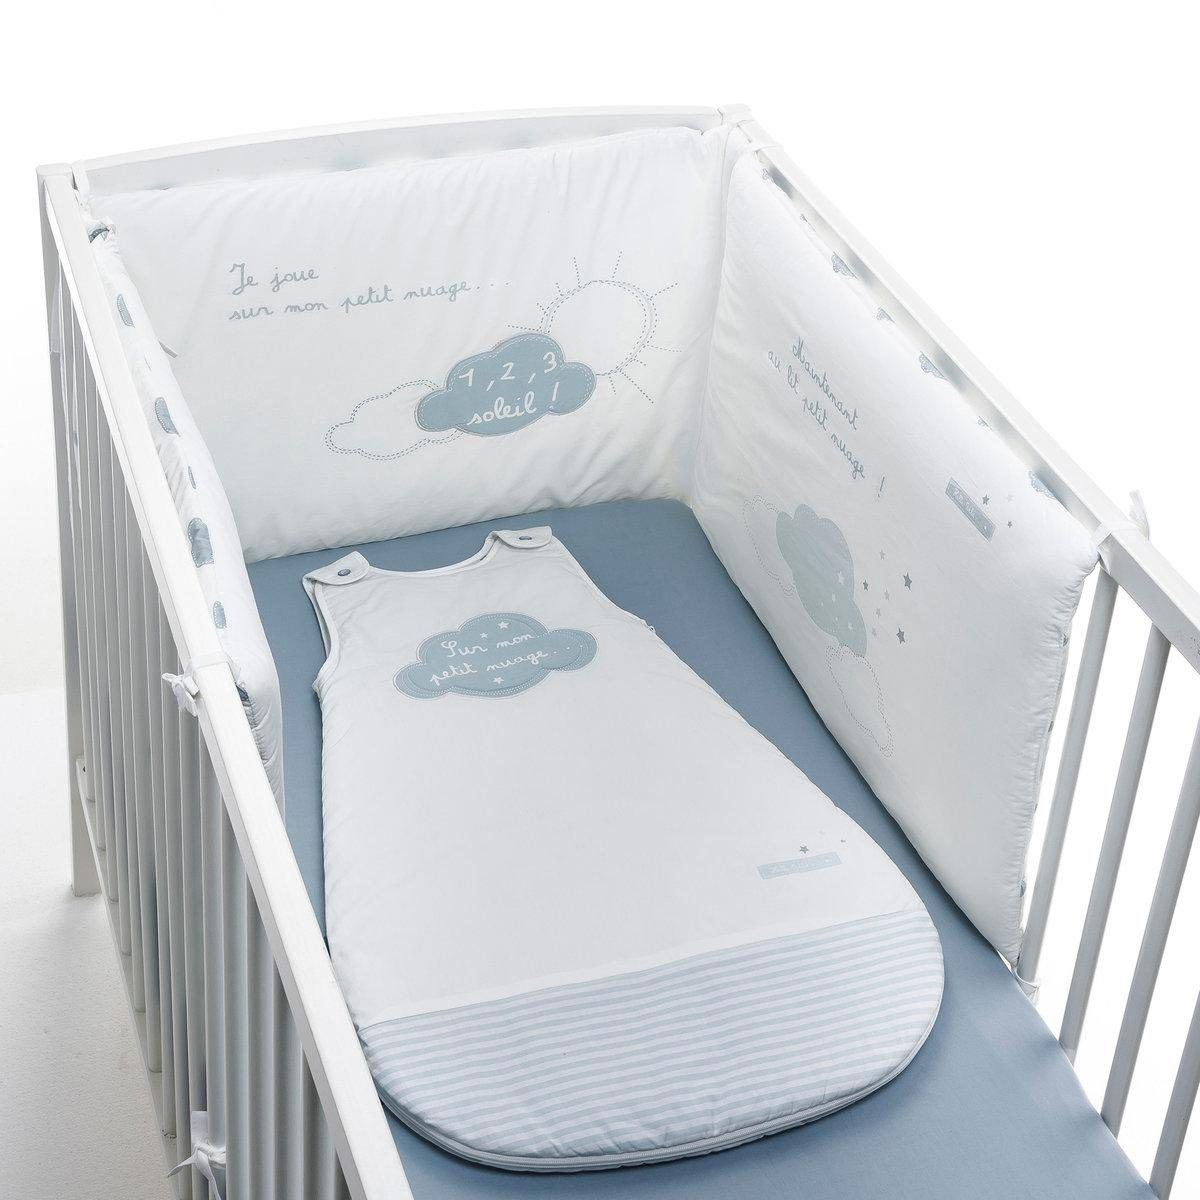 tour de lit sur mon petit nuage r baby la redoute. Black Bedroom Furniture Sets. Home Design Ideas